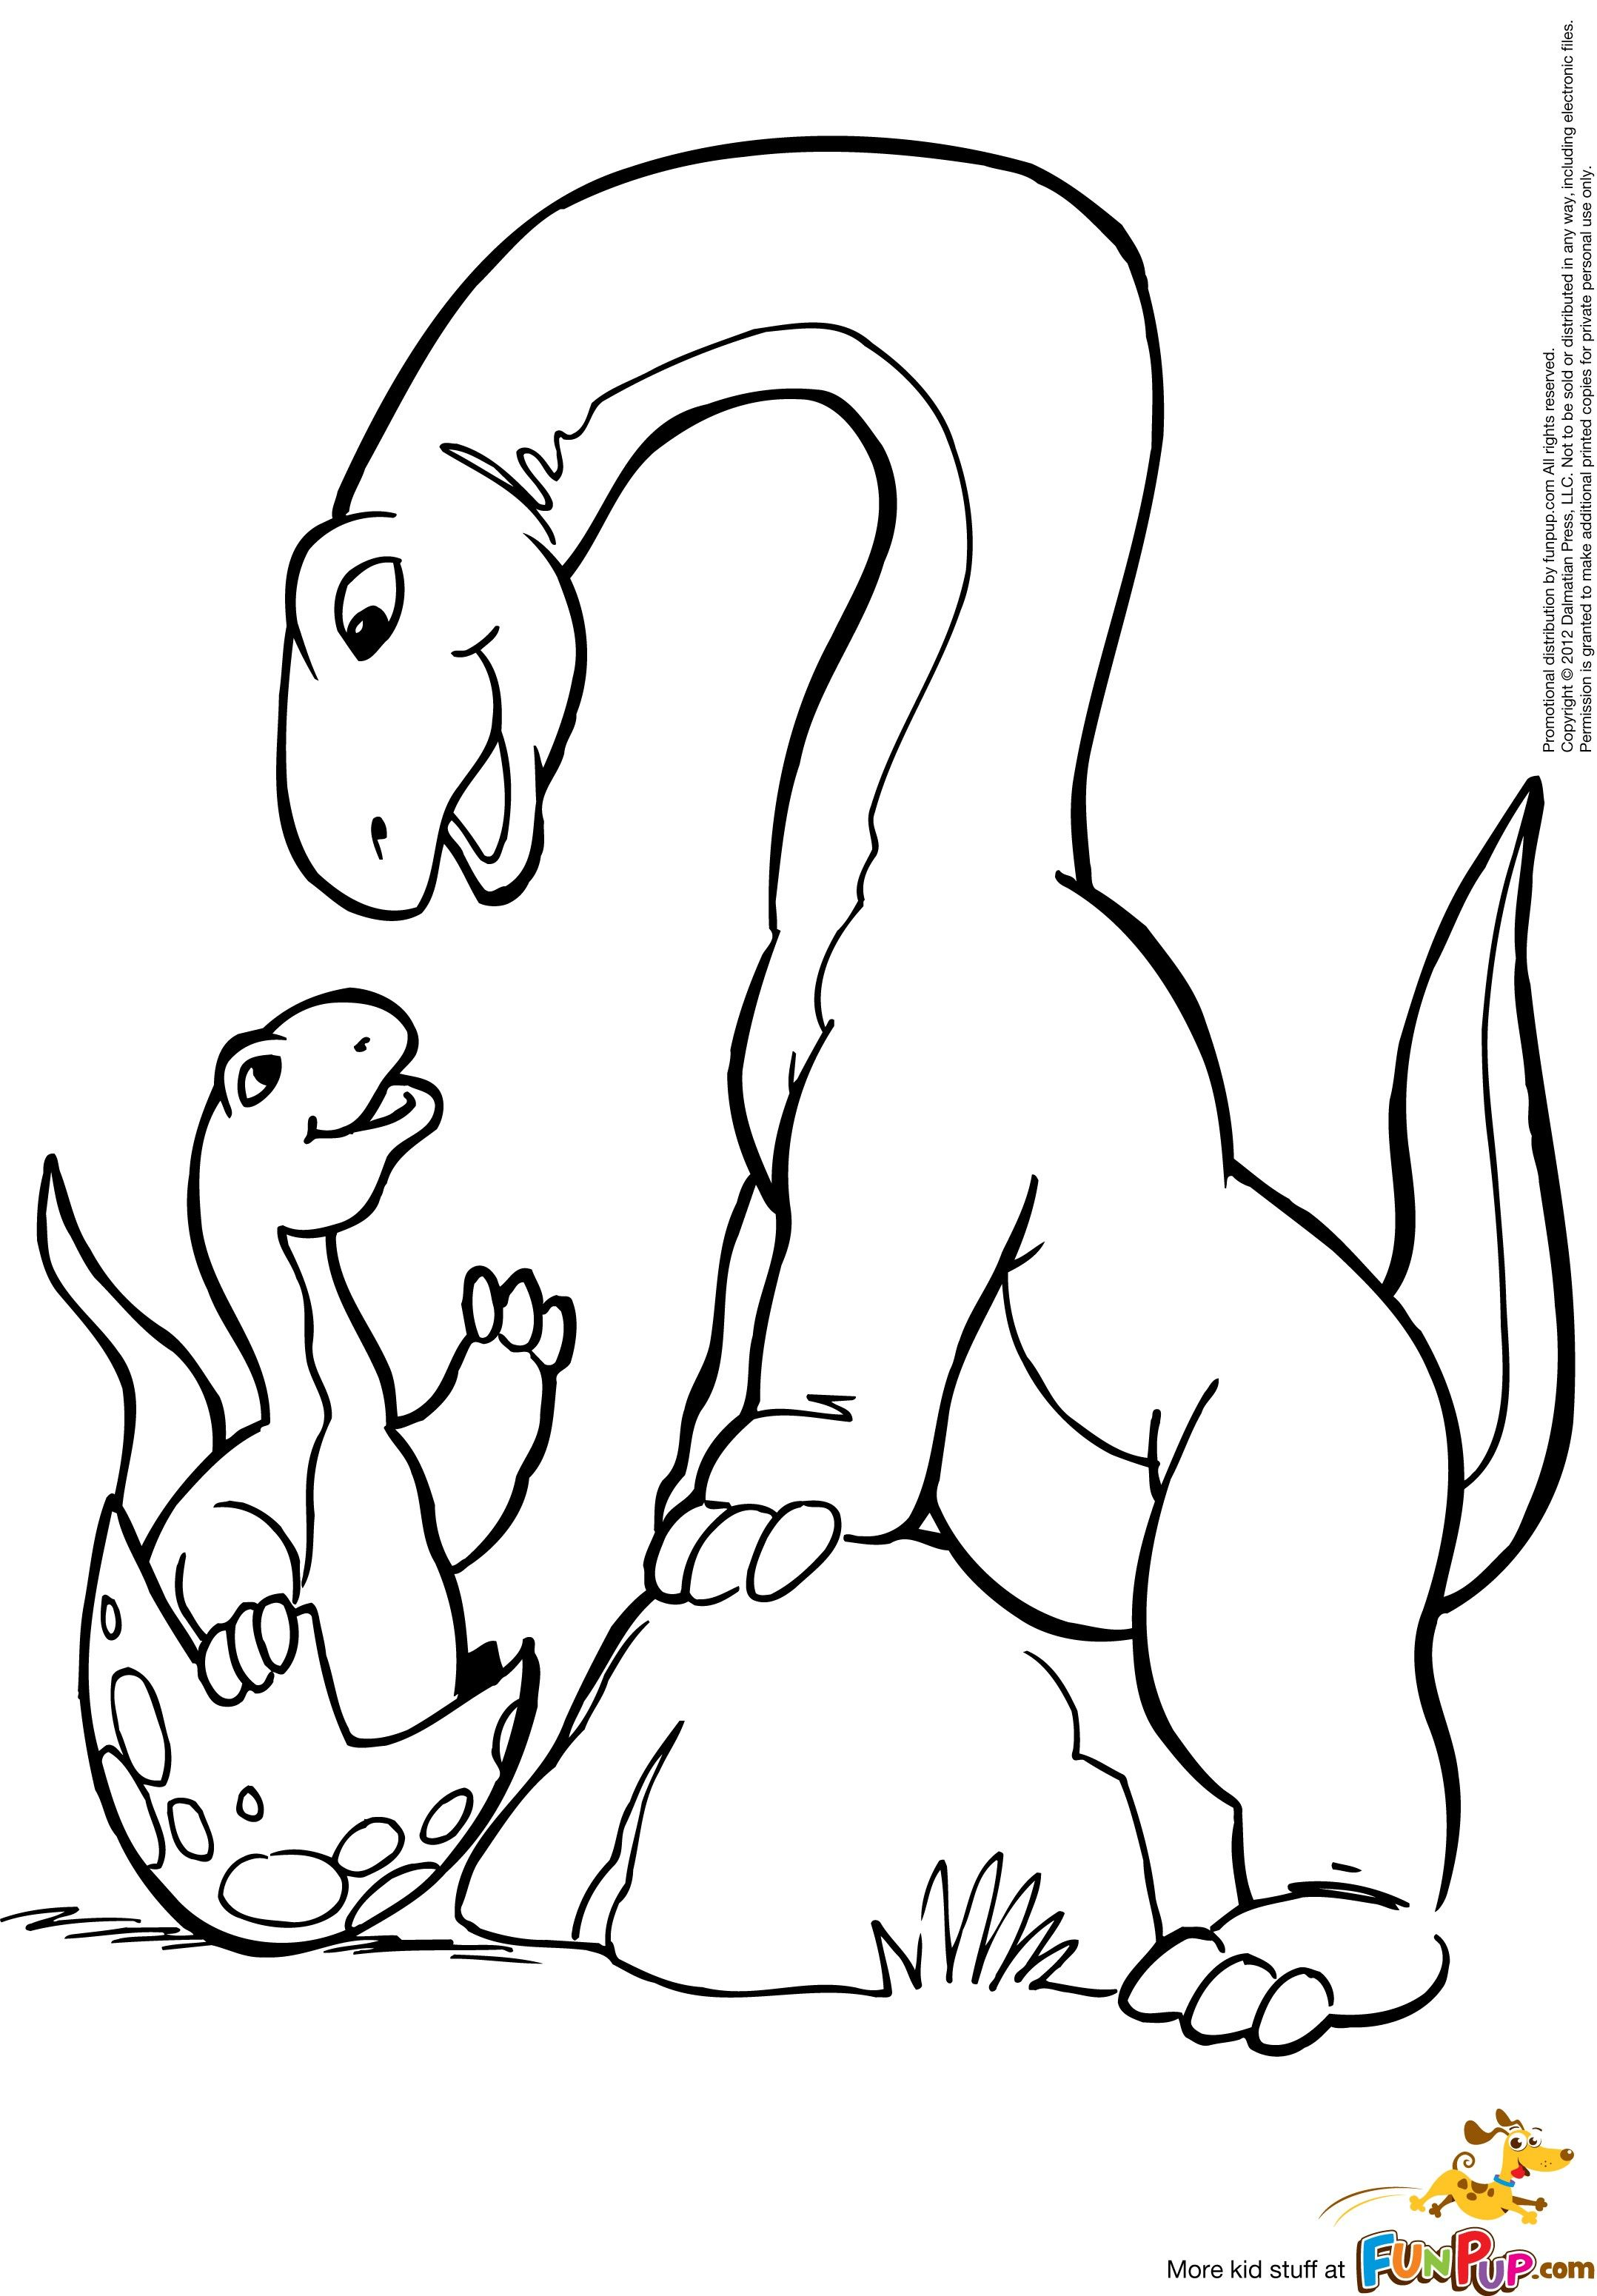 Brachiosaurus And Baby 0 00 Coloring Pages Pinterest Coloring